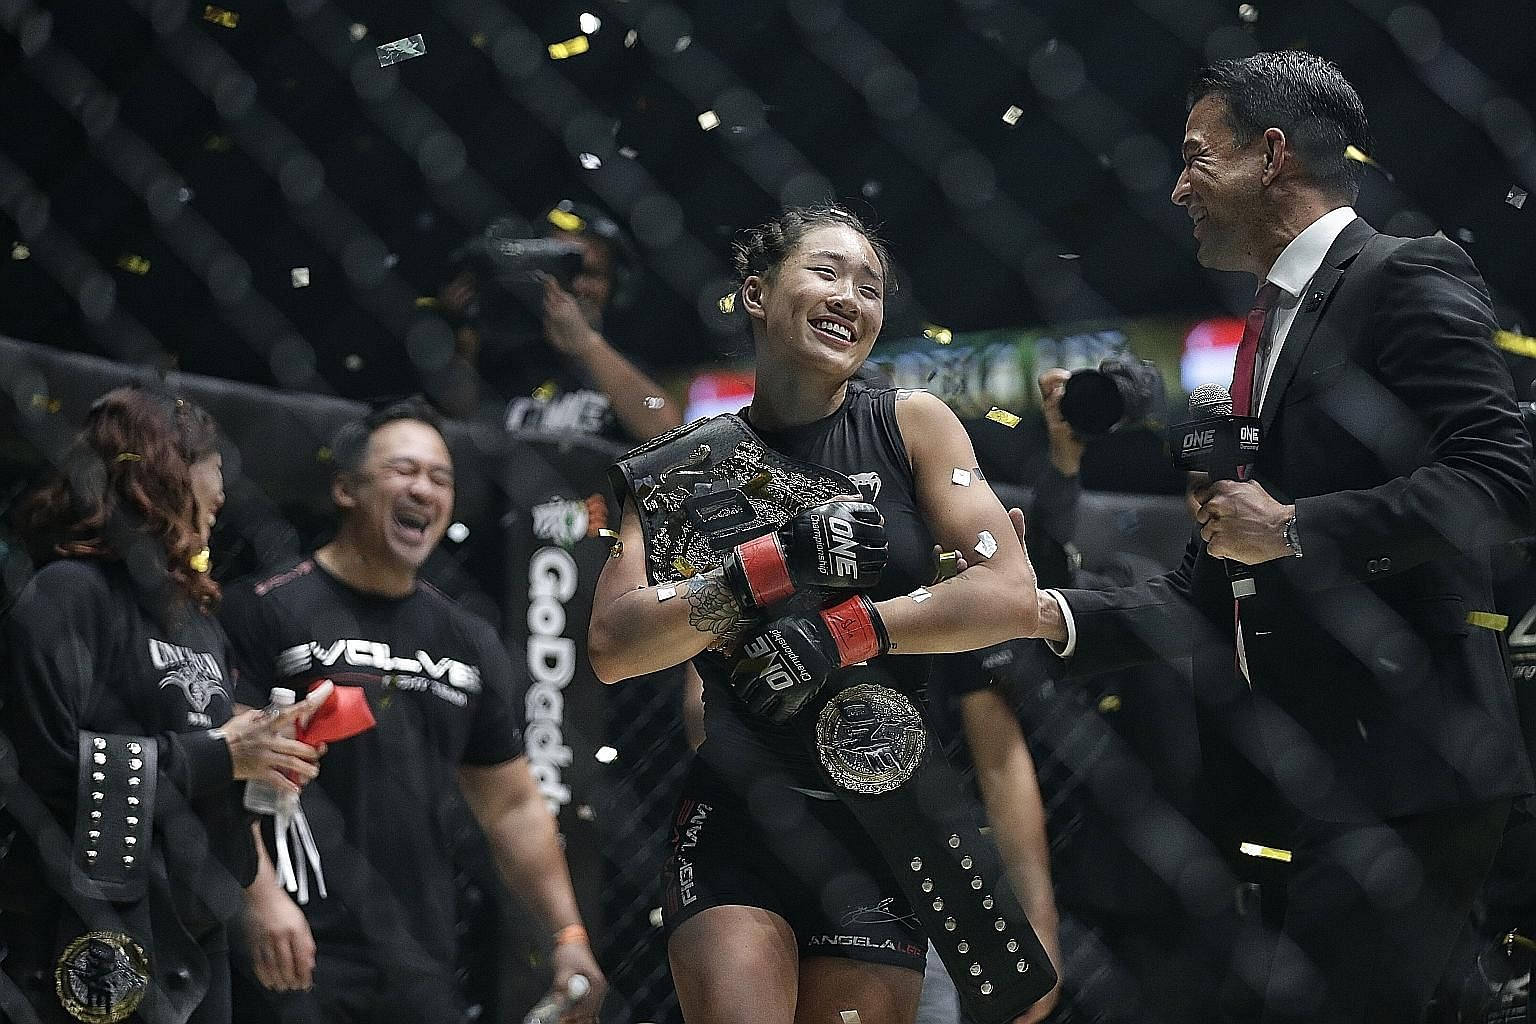 "One Championship women's atomweight world champion Angela Lee ""living the dream"" as she retained her title at the Dynasty of Heroes event at the Singapore Indoor Stadium on Friday night. The mixed martial arts star defeated Brazil's two-time muay tha"